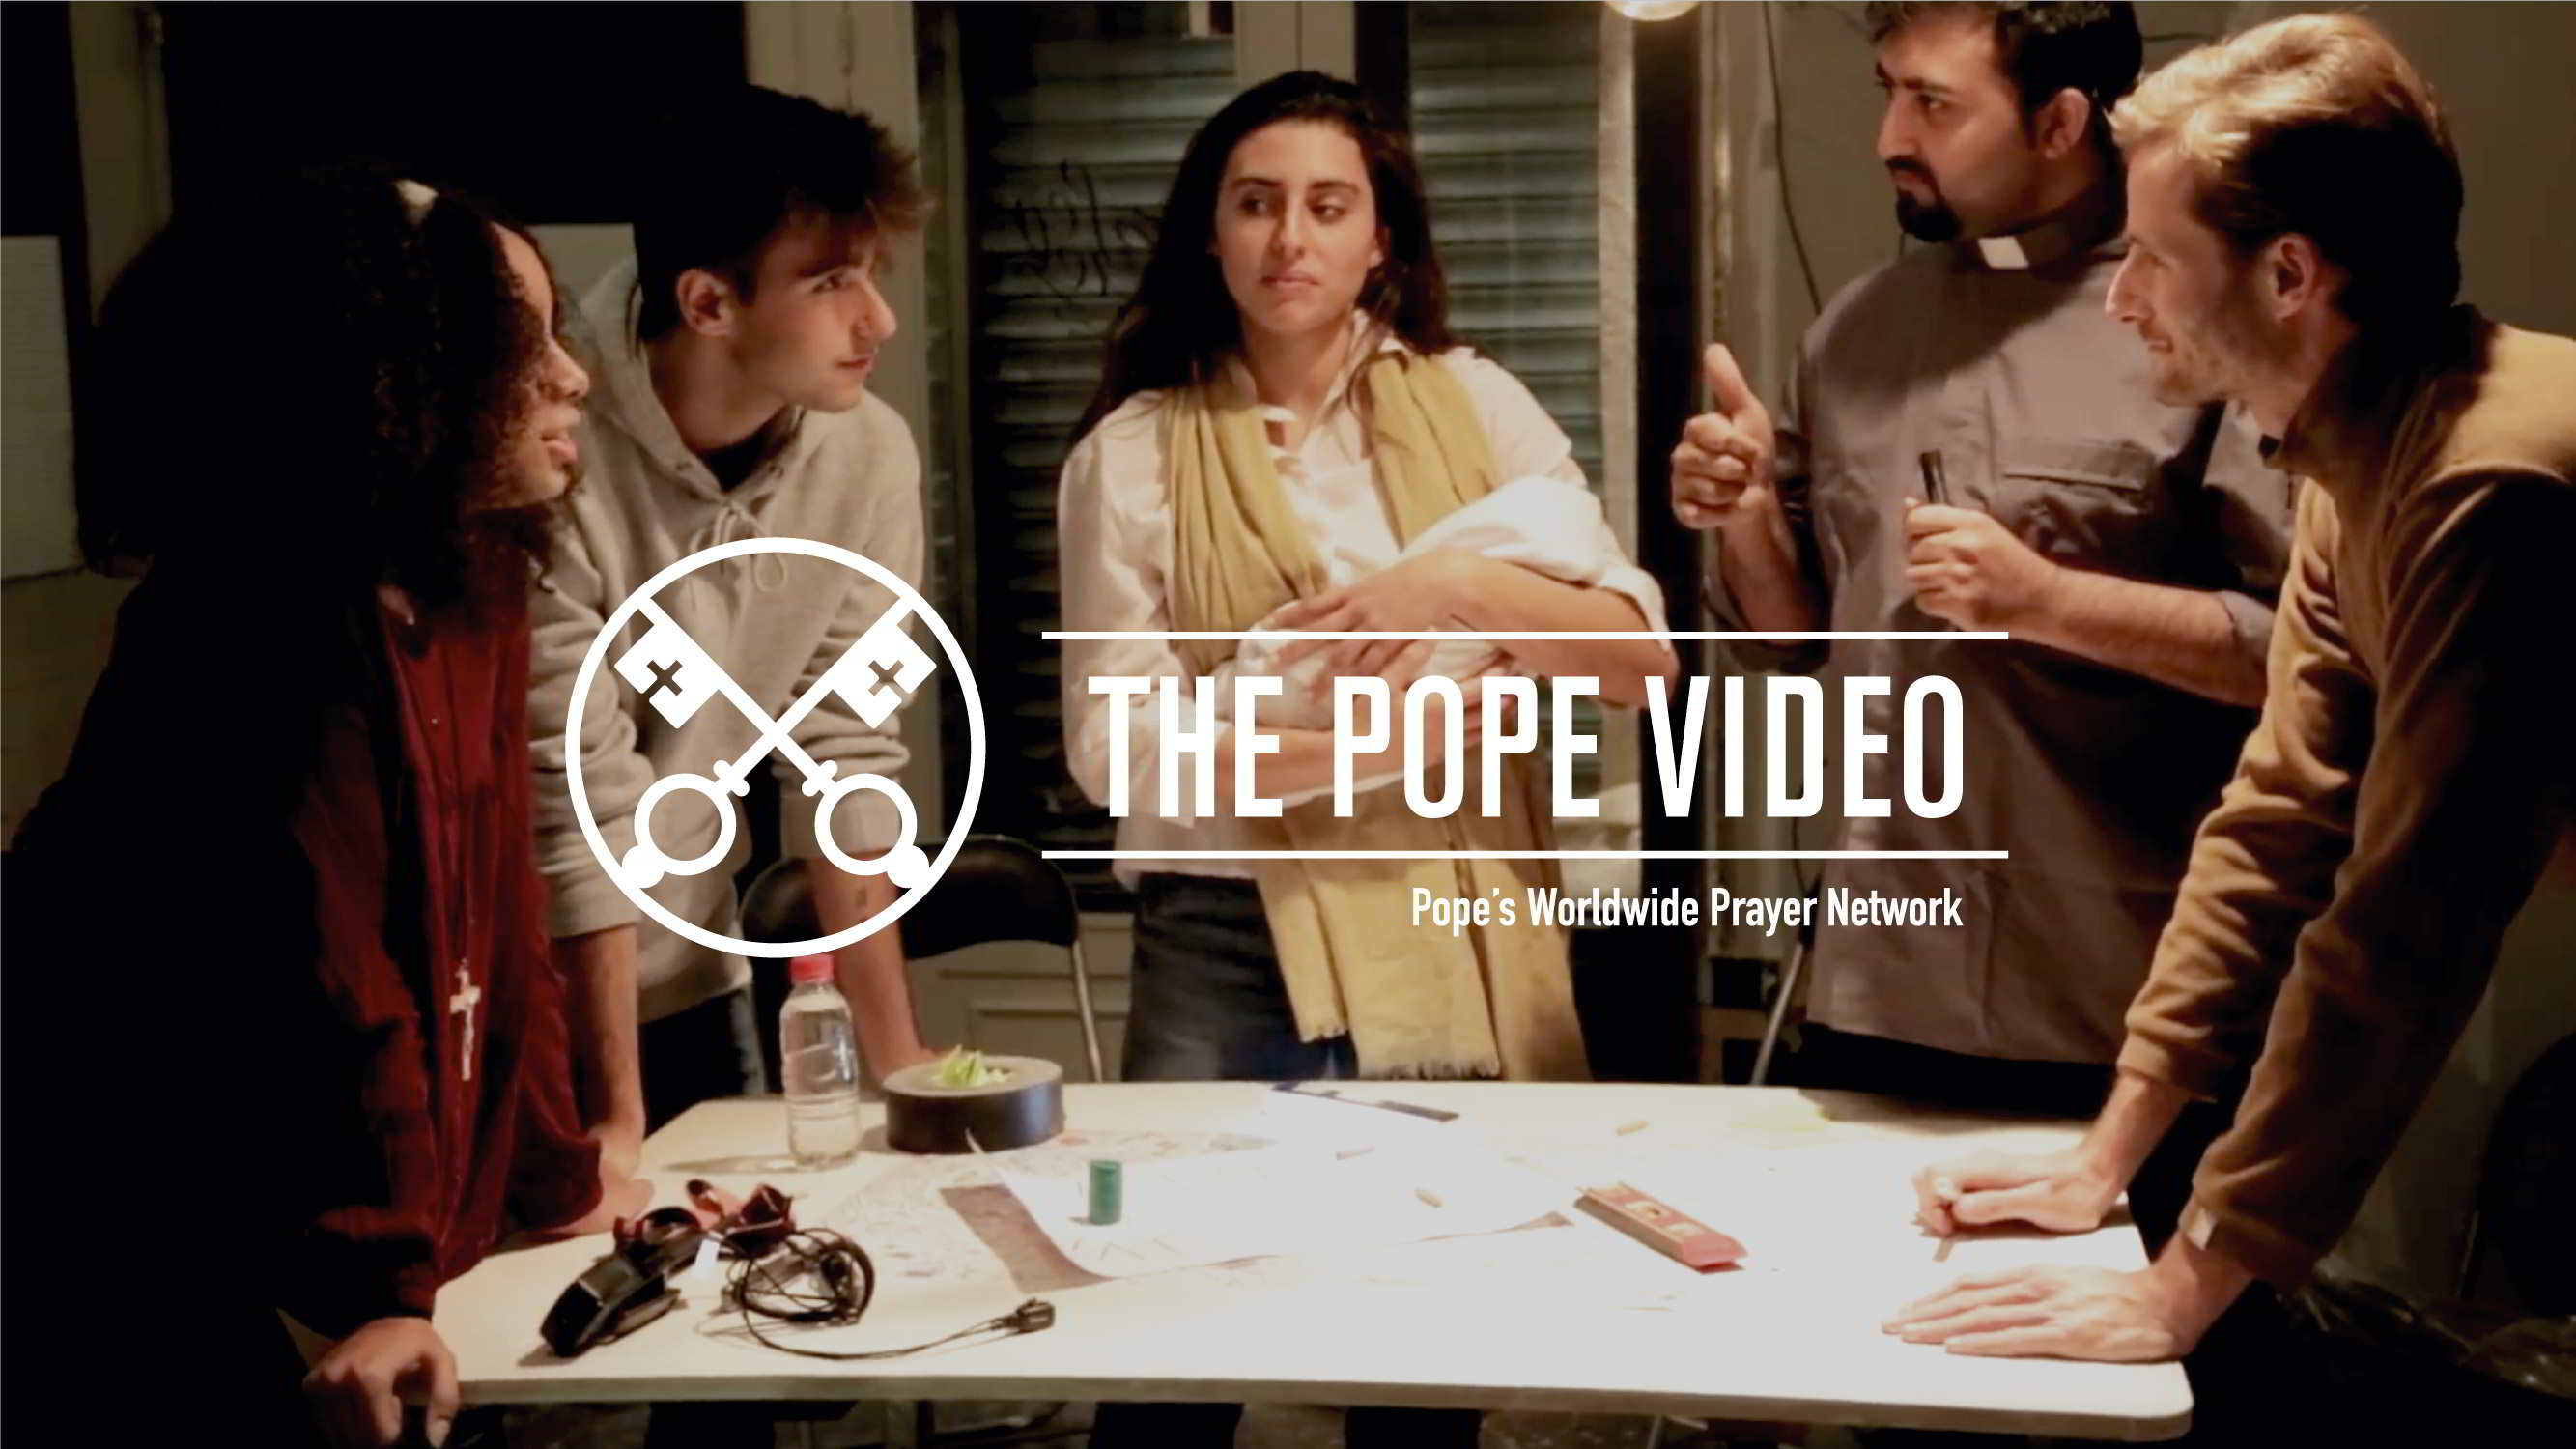 Official-Image-TPV-12-2018-1-EN-The-Pope-Video-In-the-service-of-the-transmission-of-faith